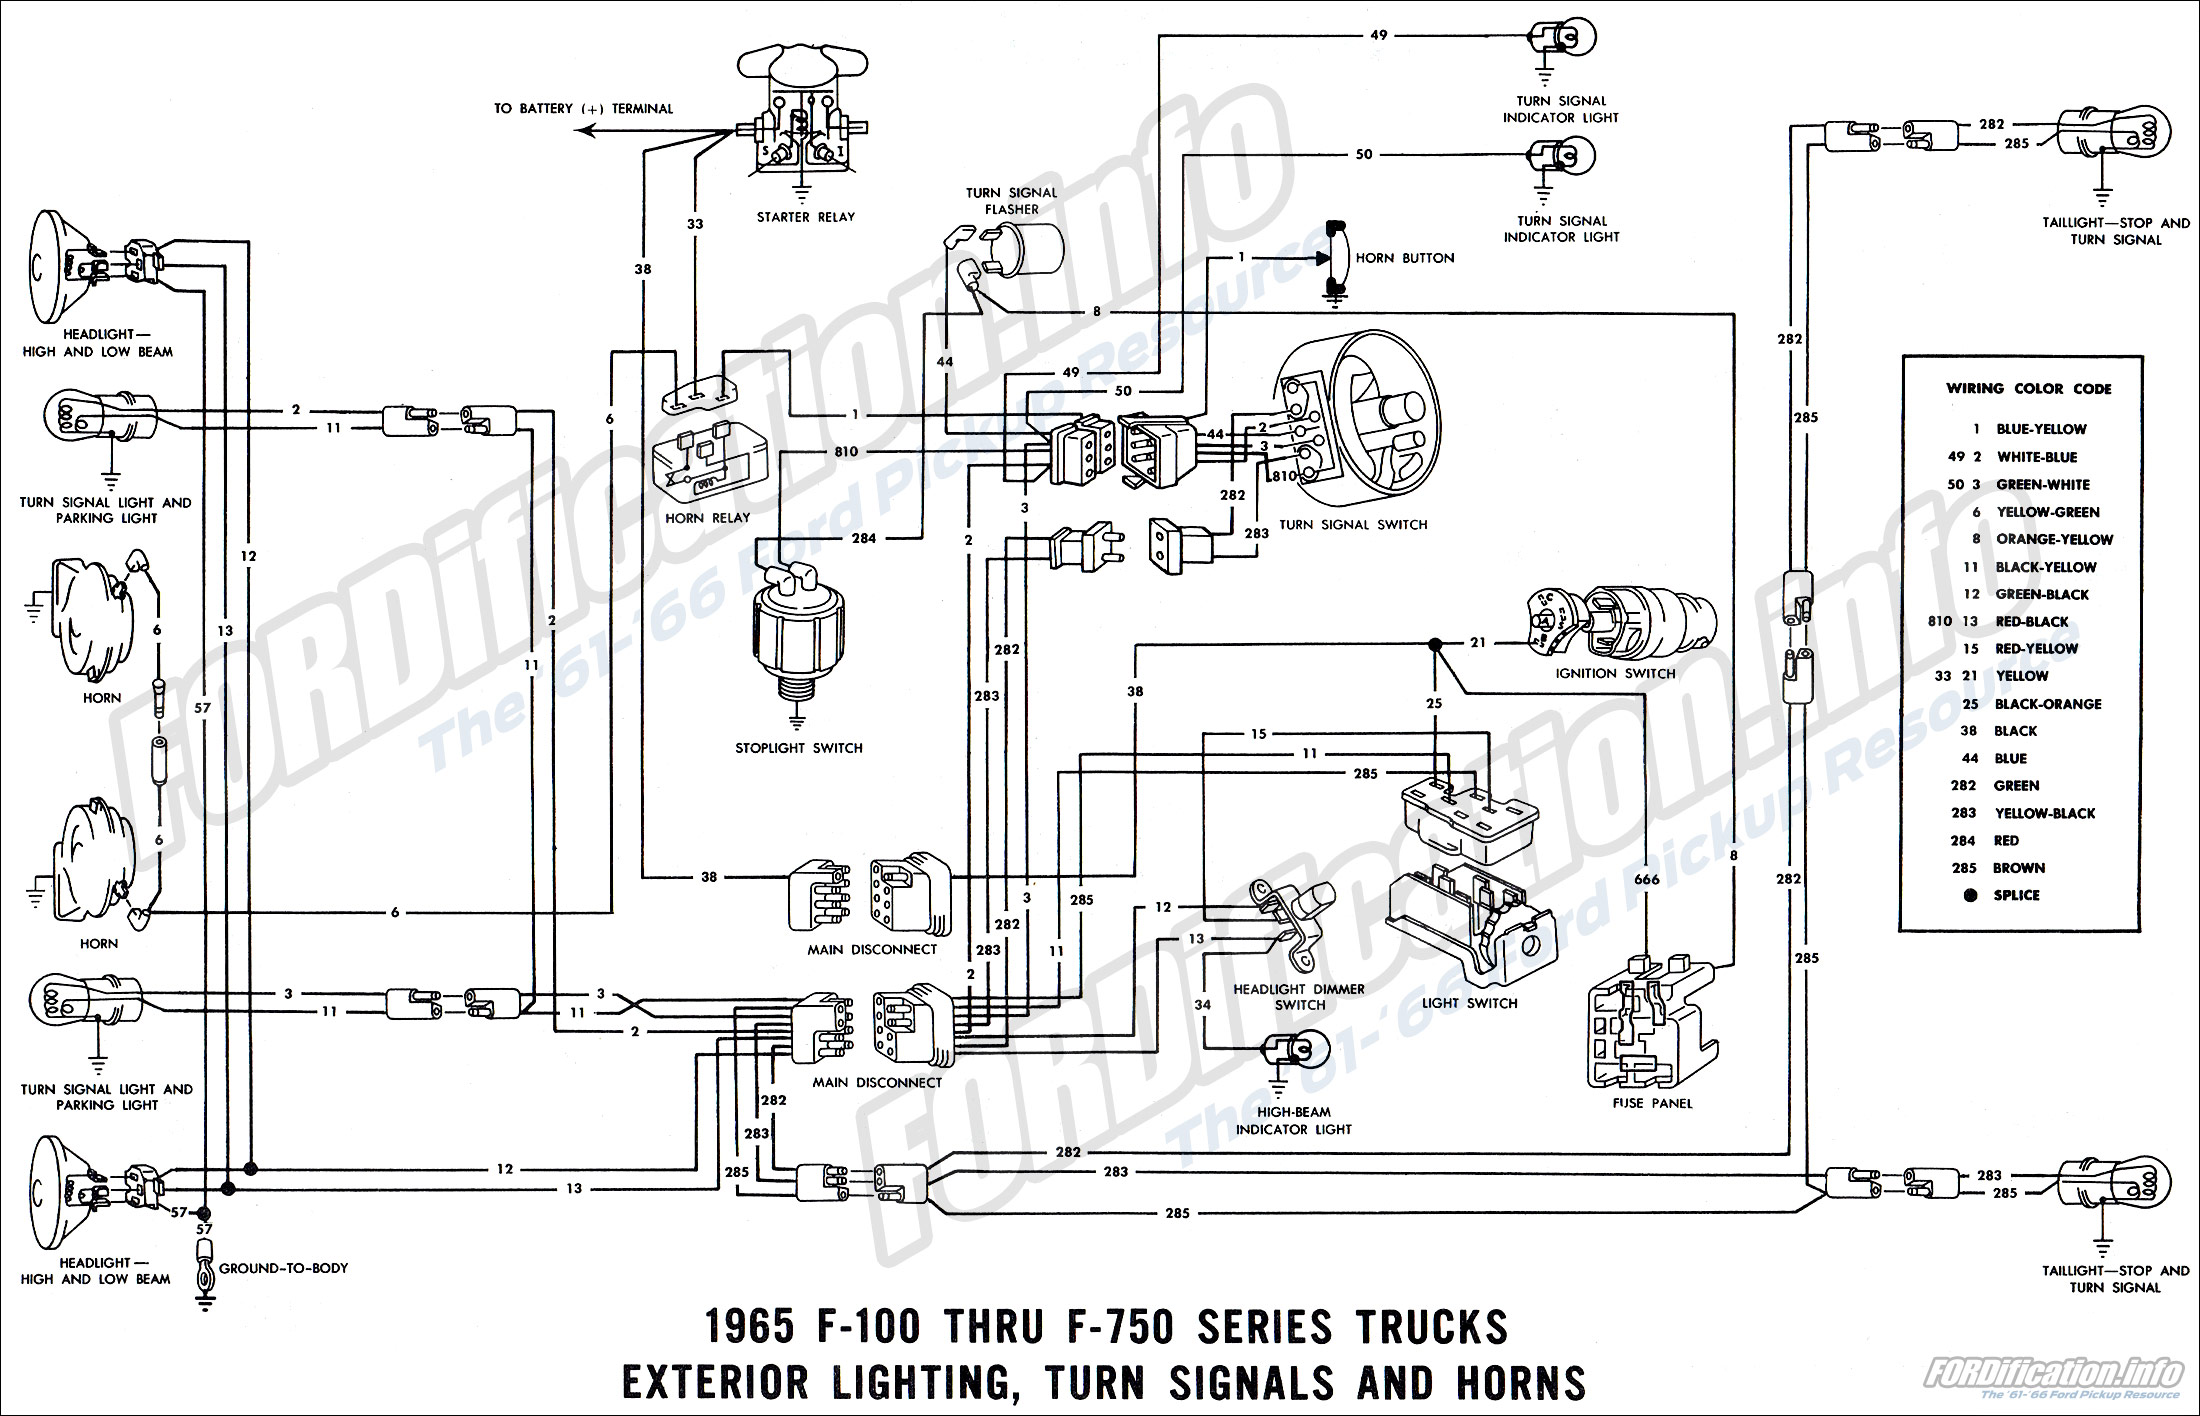 Lovely Trex 450 Wiring Schematic Photos - Wiring Diagram Ideas ...